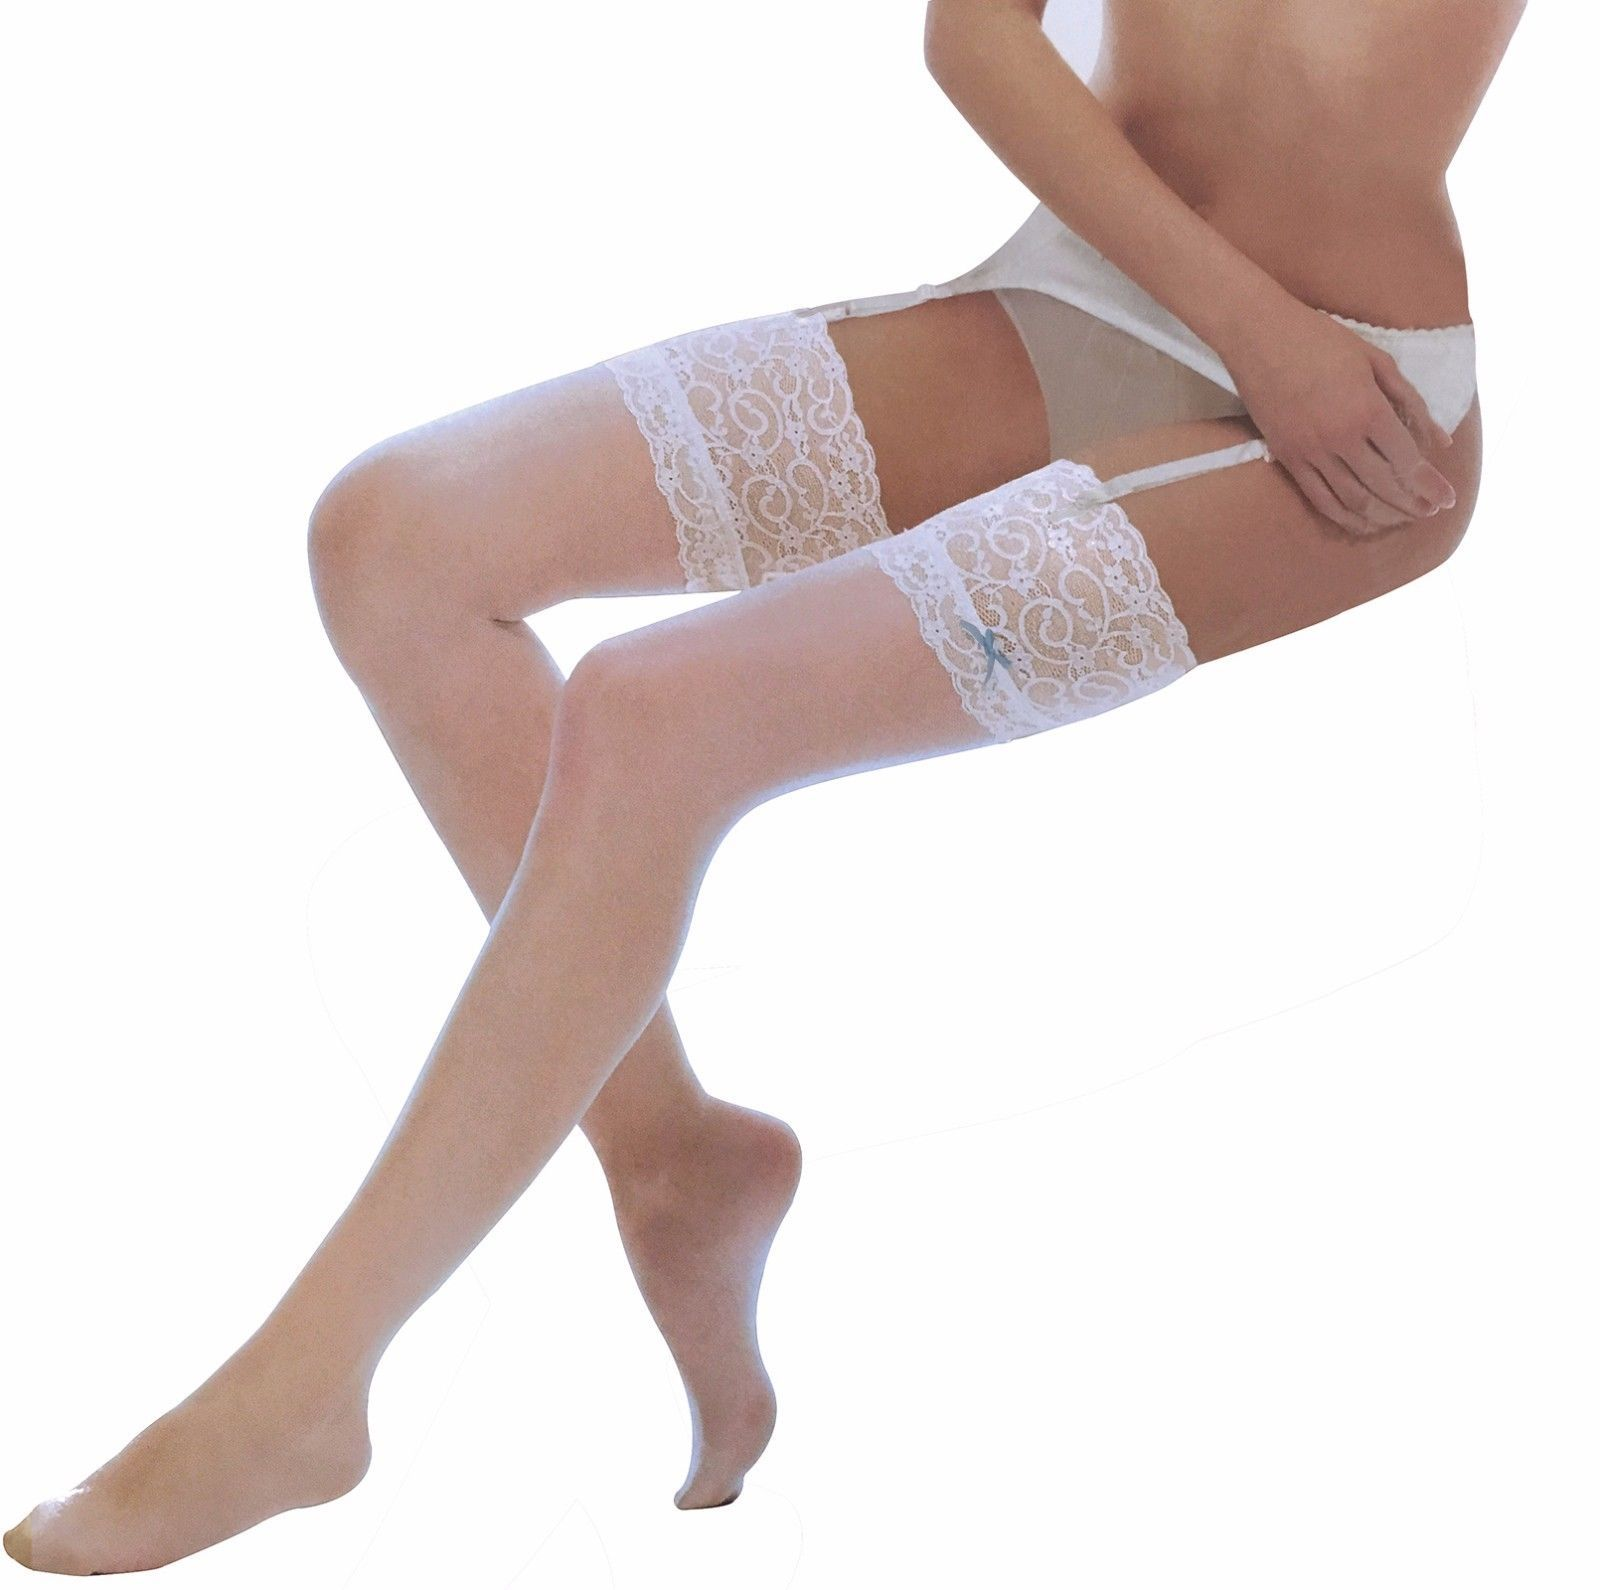 Womens Sexy 10 Den Vintage Deep Lace Top Thigh High Suspender Stockings with Bow